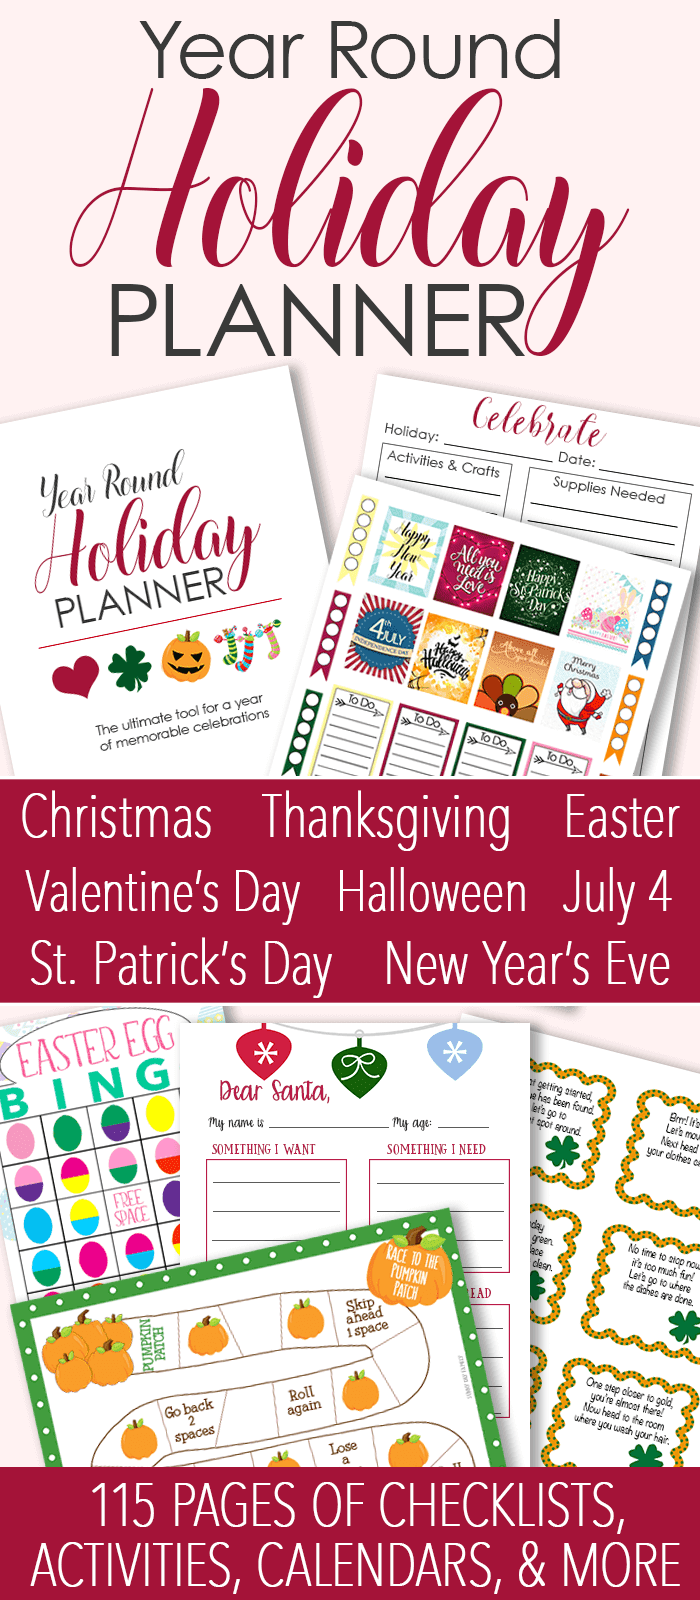 Plan an entire year of celebrations with this printable Holiday Planner! Valentine's Day activities, St. Patrick's Day activities, July 4 activities, Easter activities, Halloween activities, Thanksgiving activities, and Christmas activities. Plus planning pages, calendars, and checklists for all the holidays. The only holiday planner you need!